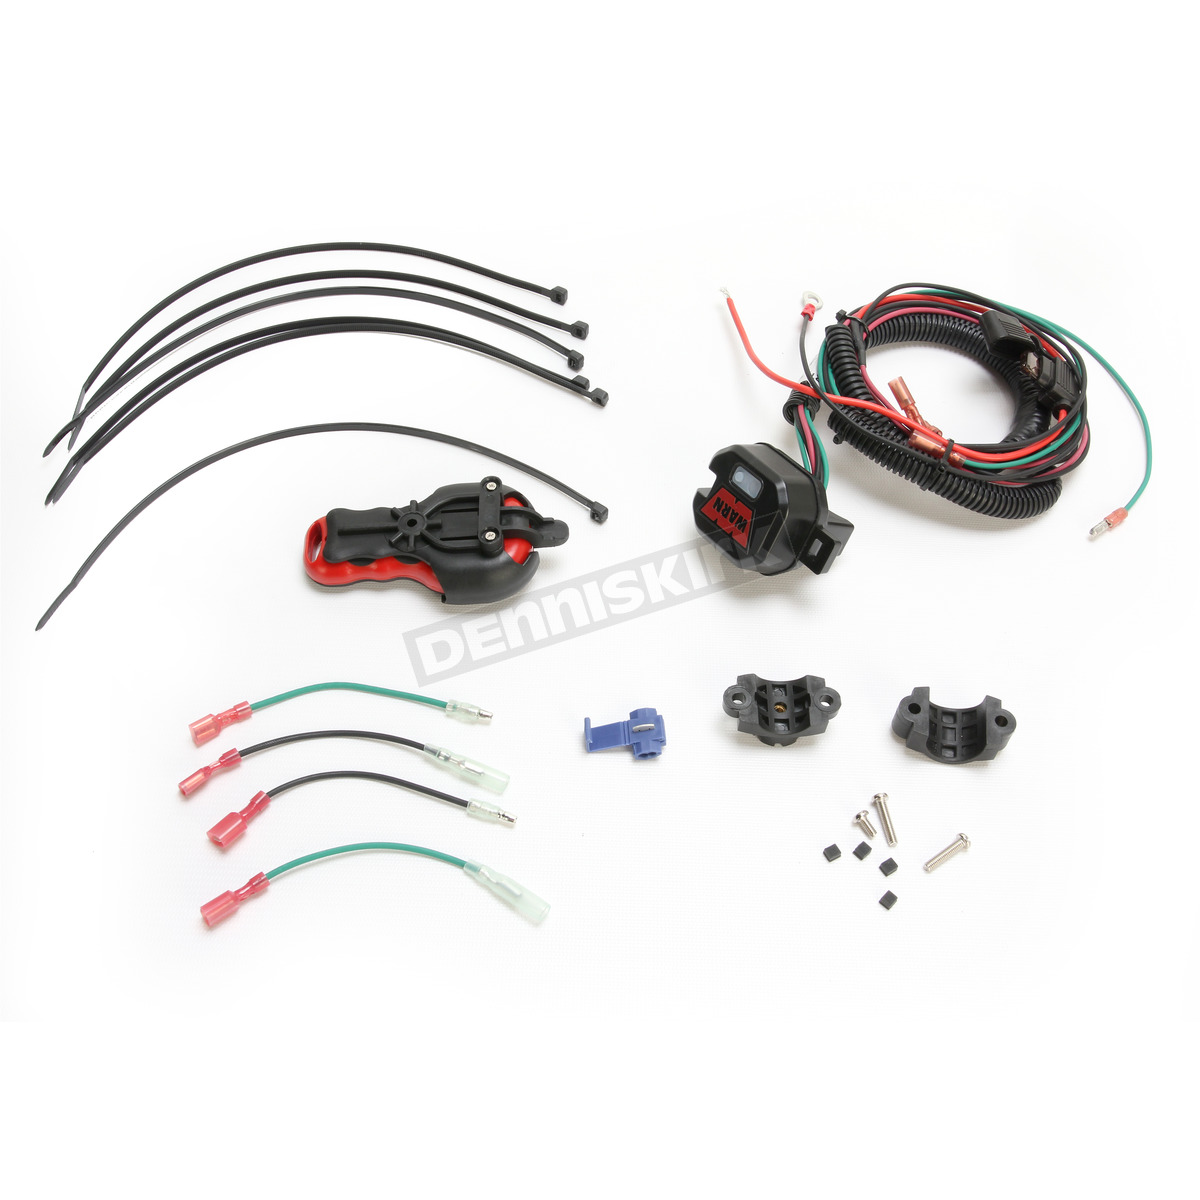 warn wireless winch remote system